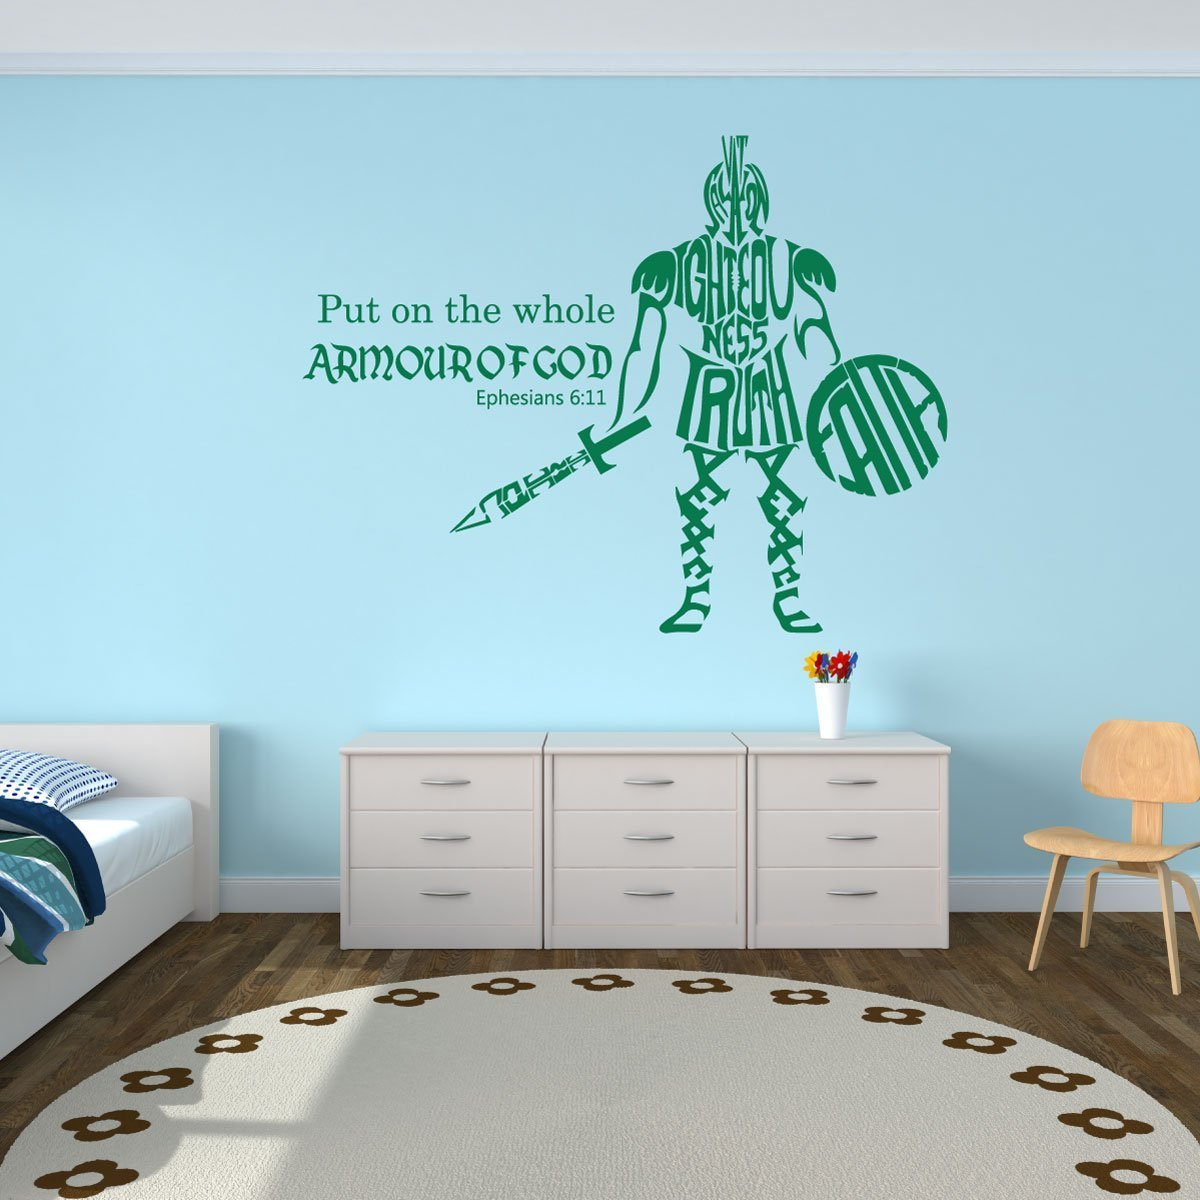 Whole Room Wall Decals